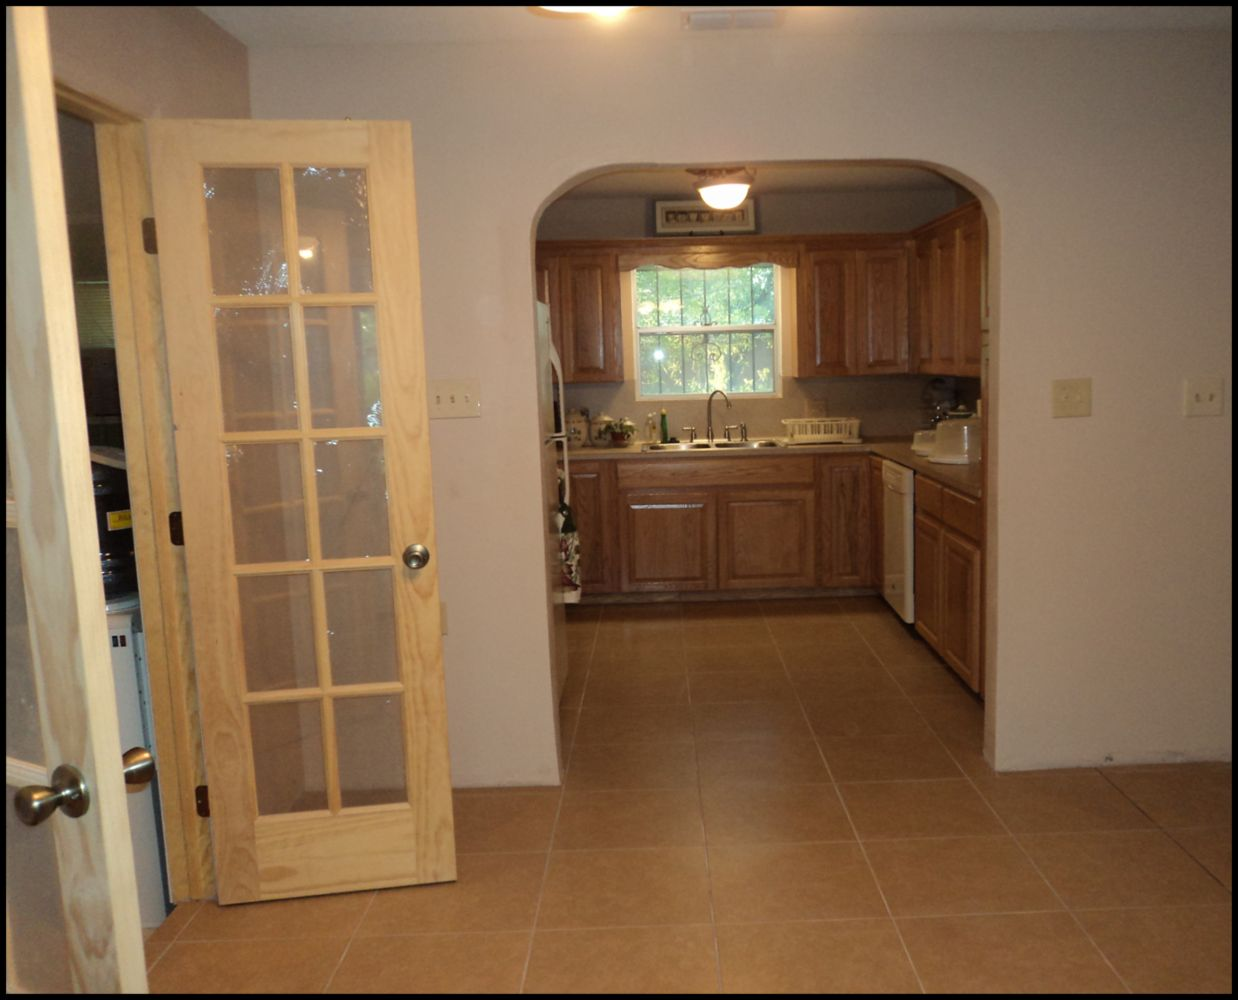 This Project Was A Kitchen Remodel By Another Cabinet Contractor. We Came  In And Made The Arch Opening And Install Ceramic Tile To The Floor.